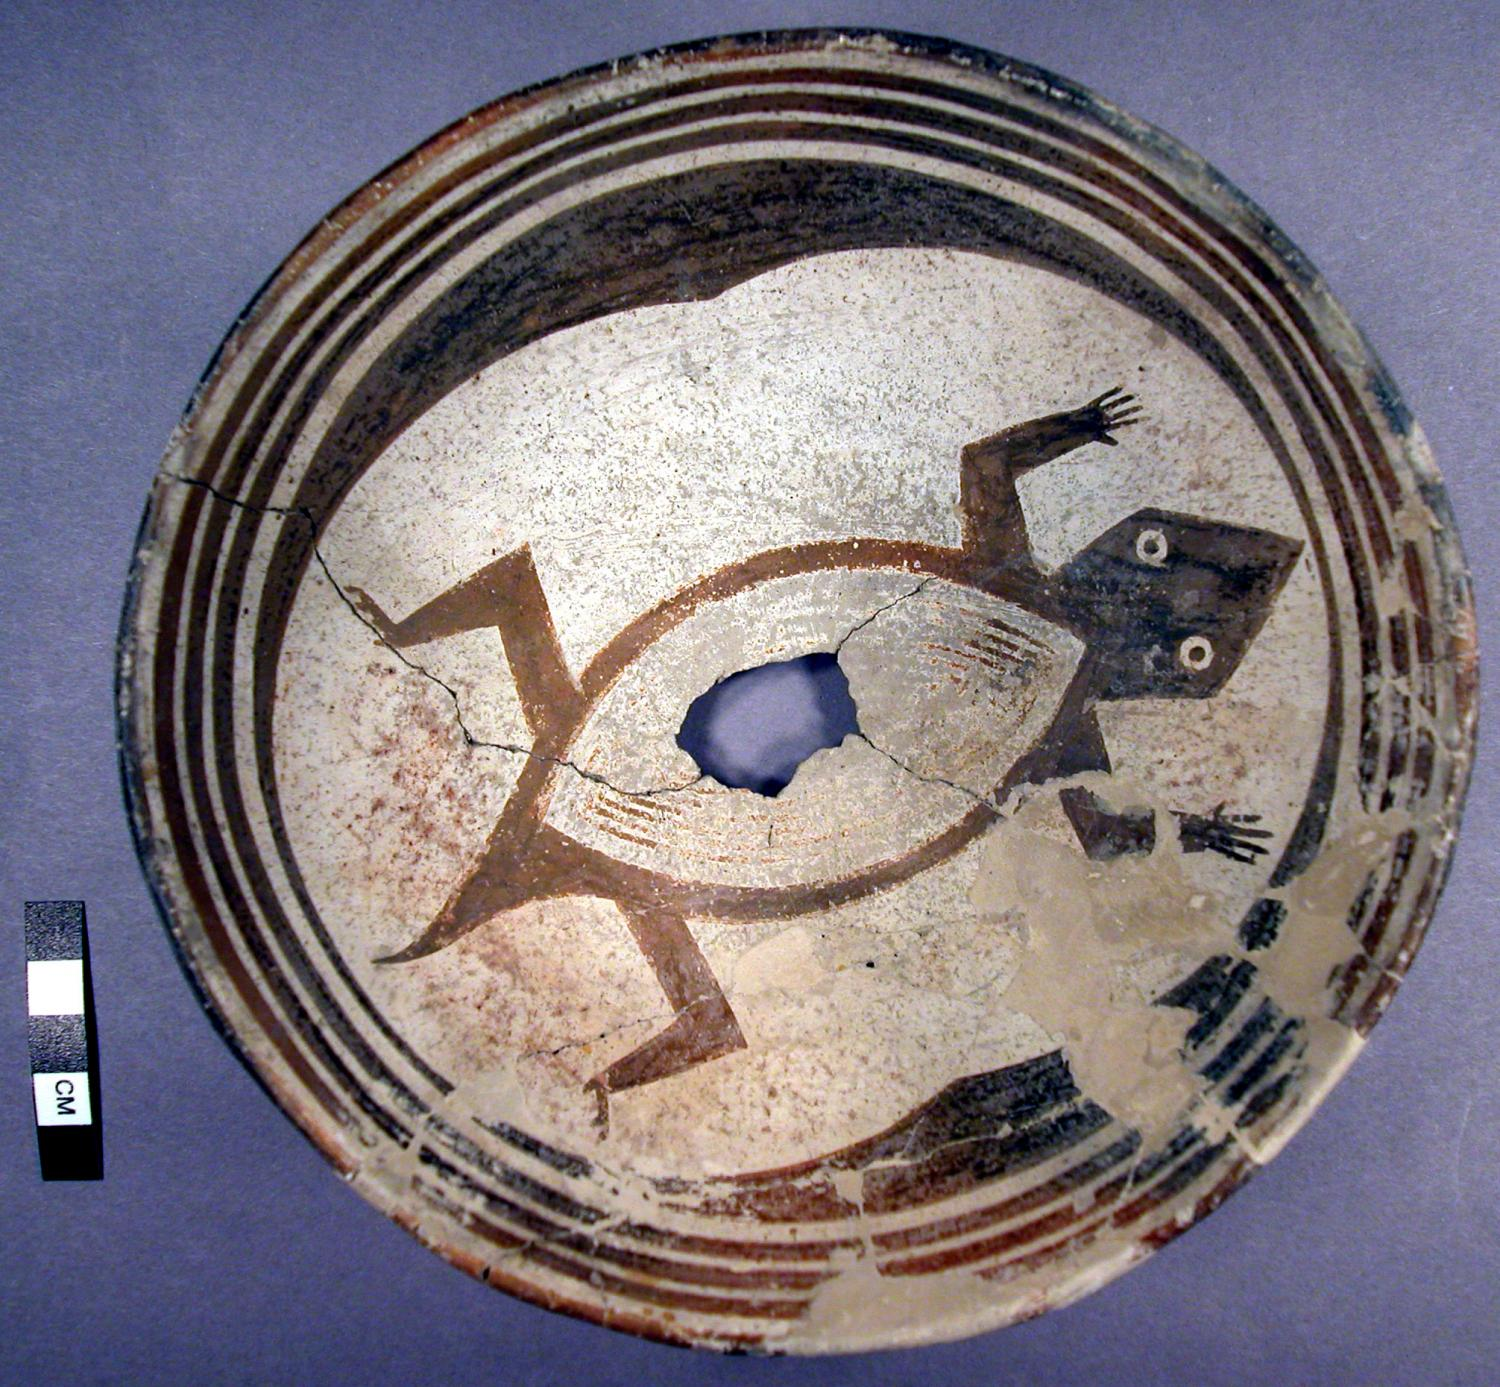 A Mimbres pottery image from the center's collection.